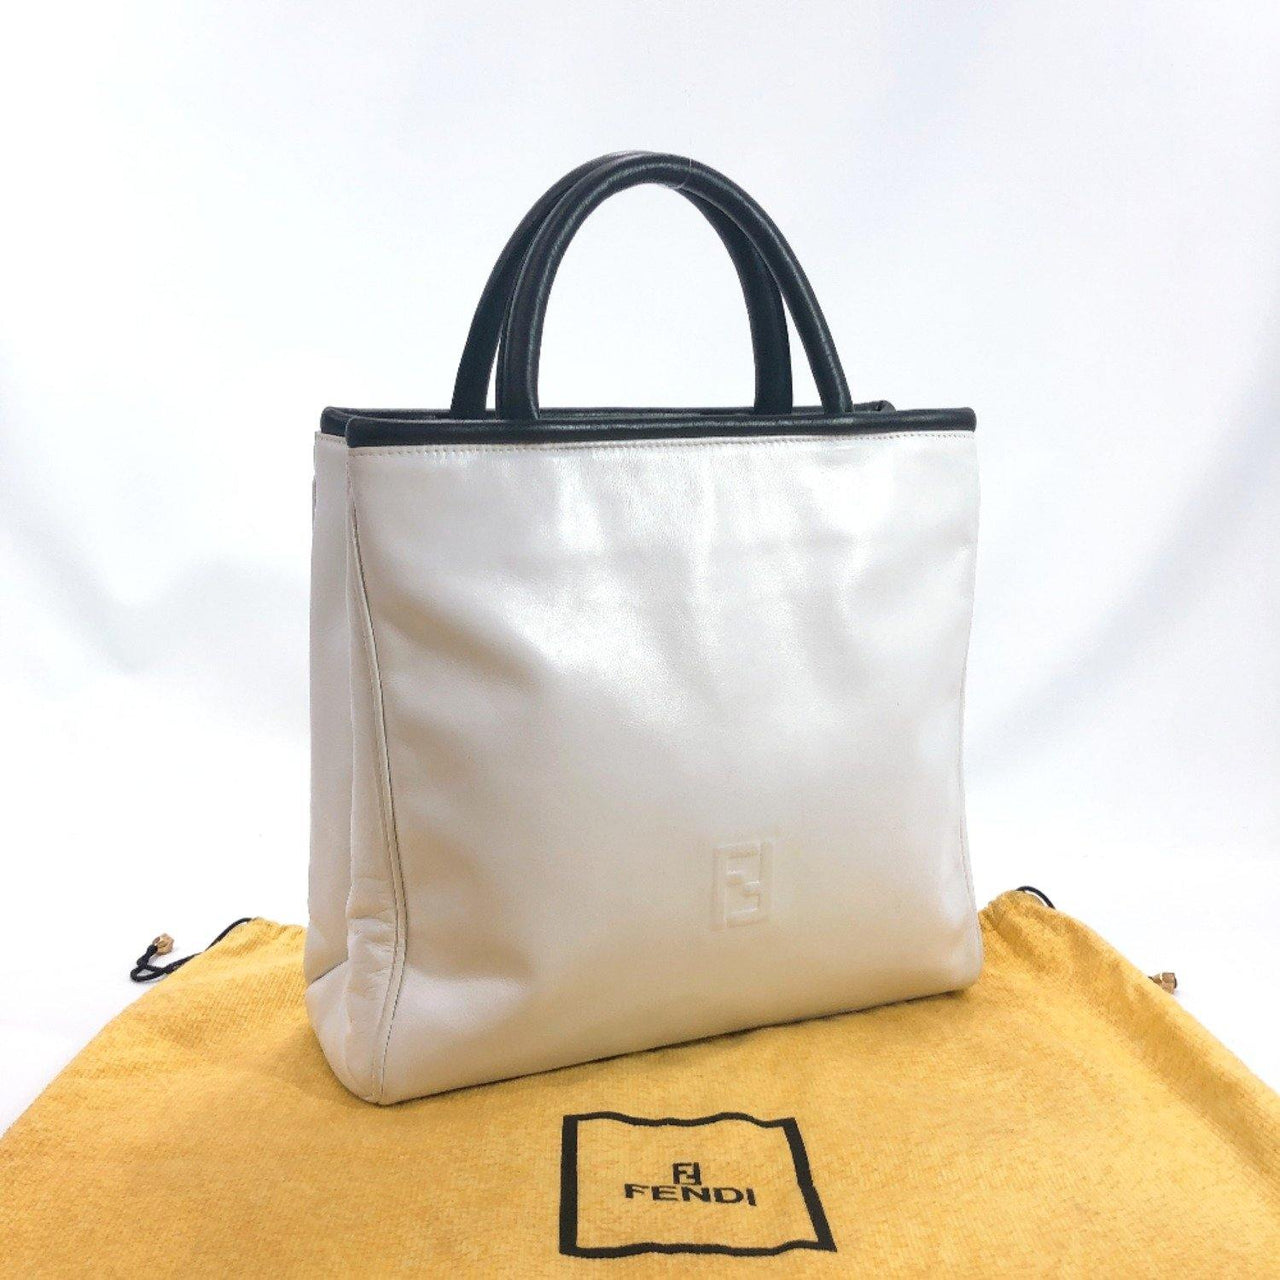 FENDI Handbag vintage leather white Women Used - JP-BRANDS.com